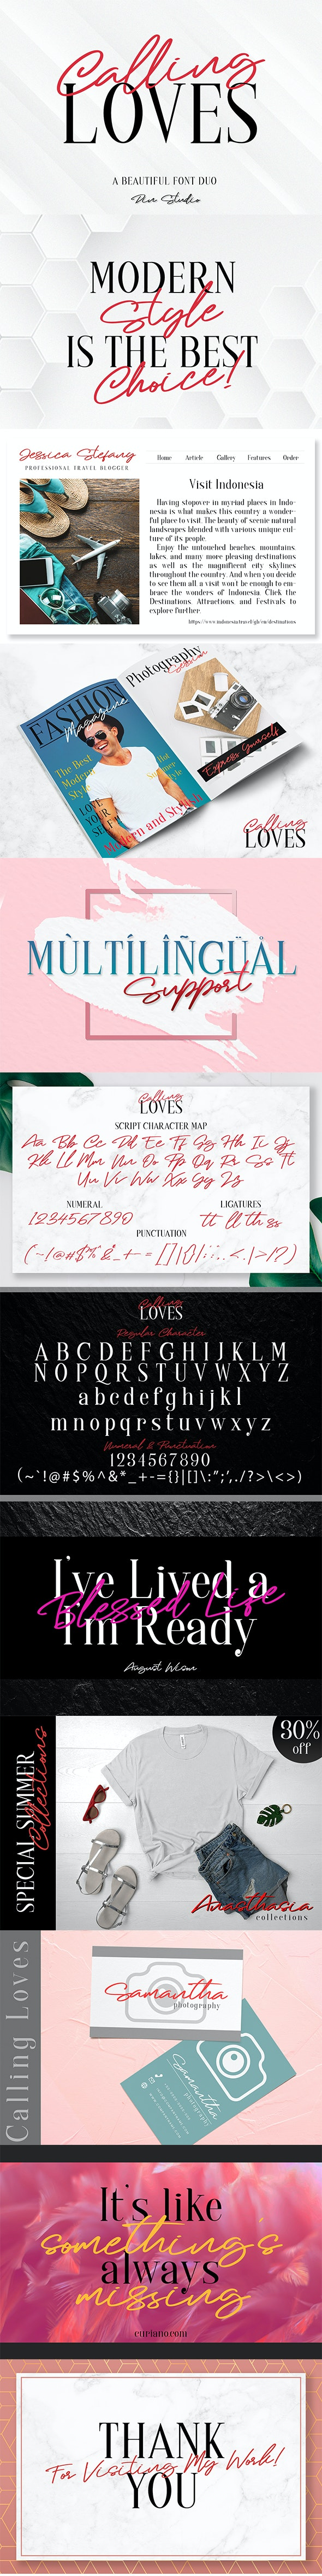 Calling Loves _ Font Duo - Hand-writing Script